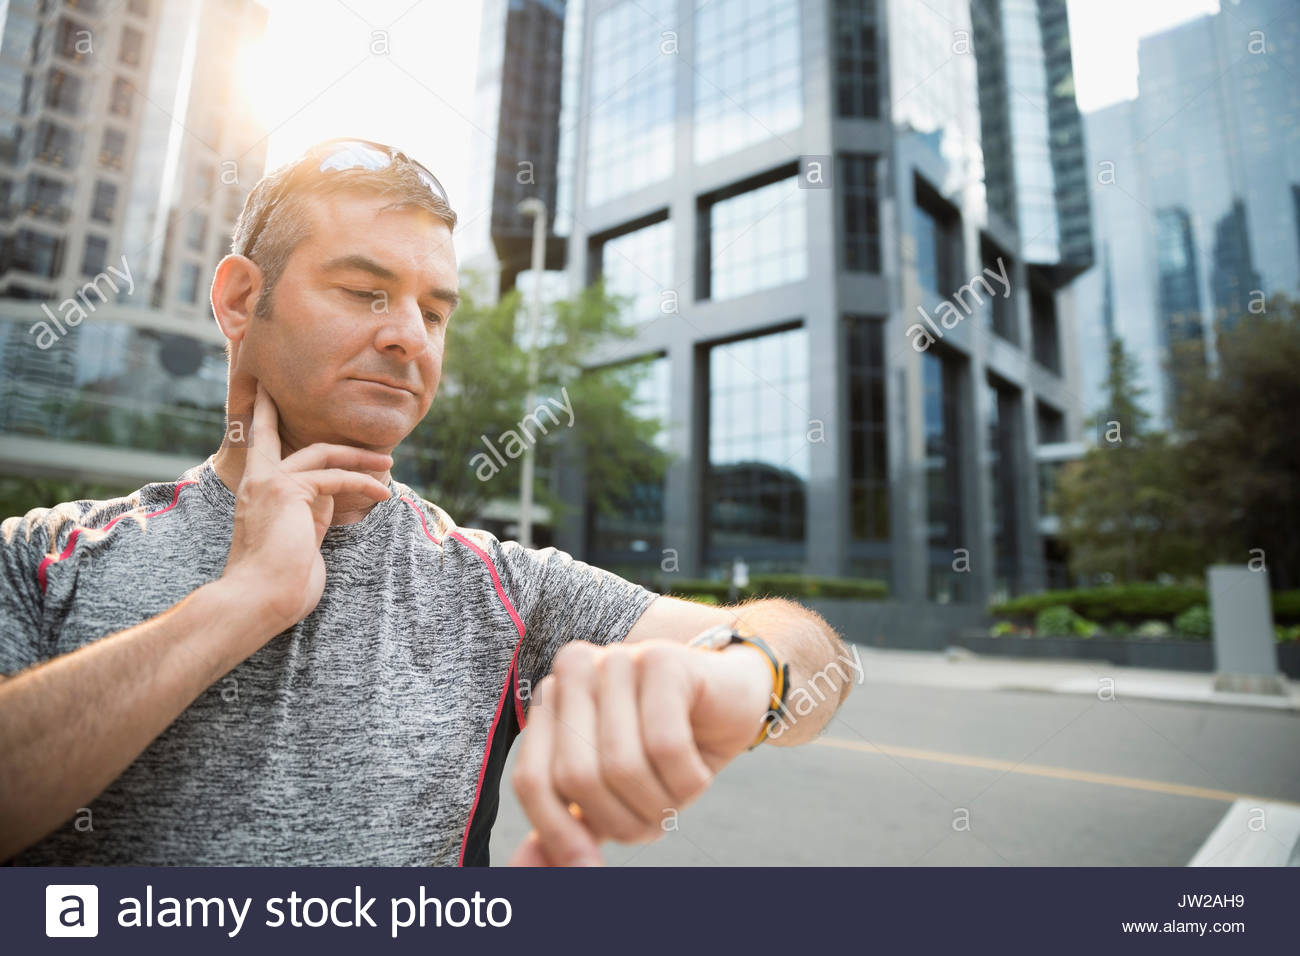 Male runner checking pulse with smart watch on urban street - Stock Image